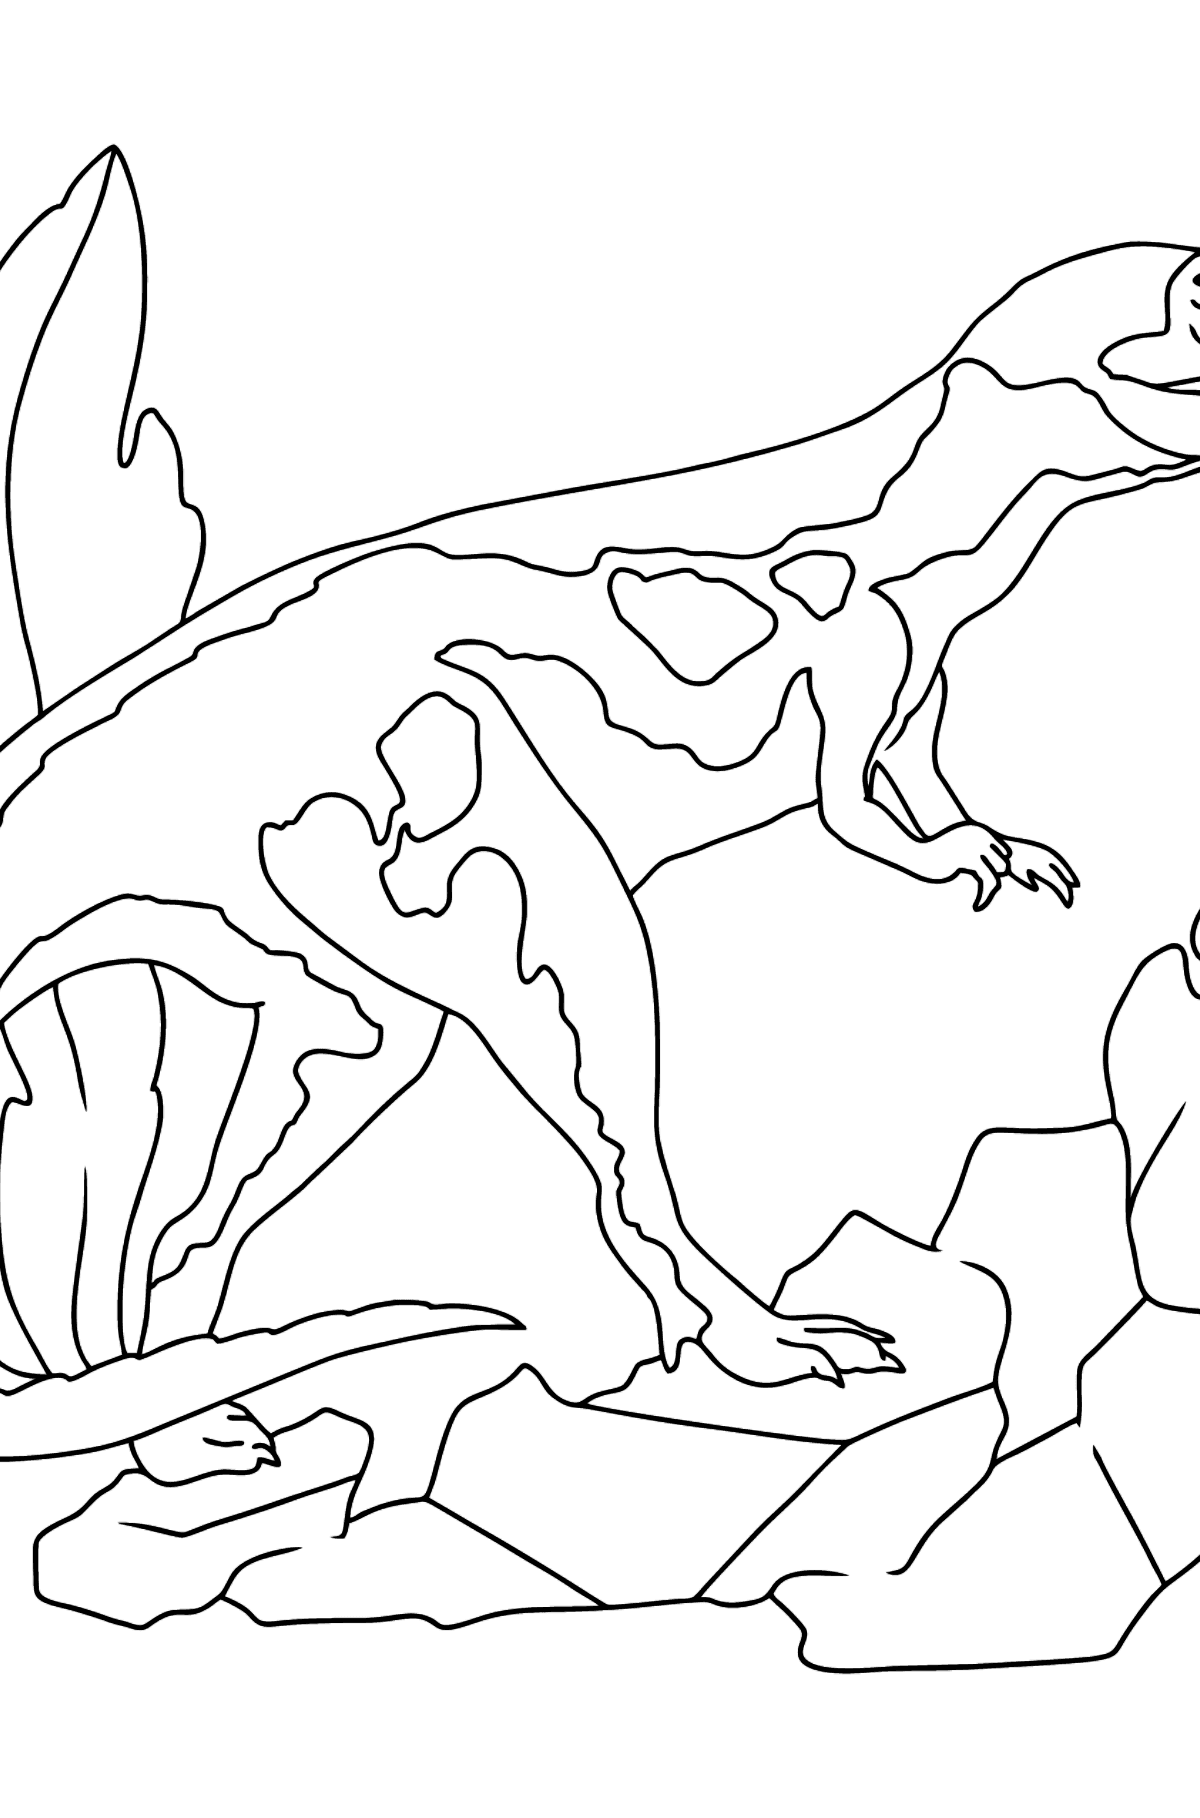 Coloring Page - Tyrannosaurus - The Cruelest Dinosaur - Coloring Pages for Kids